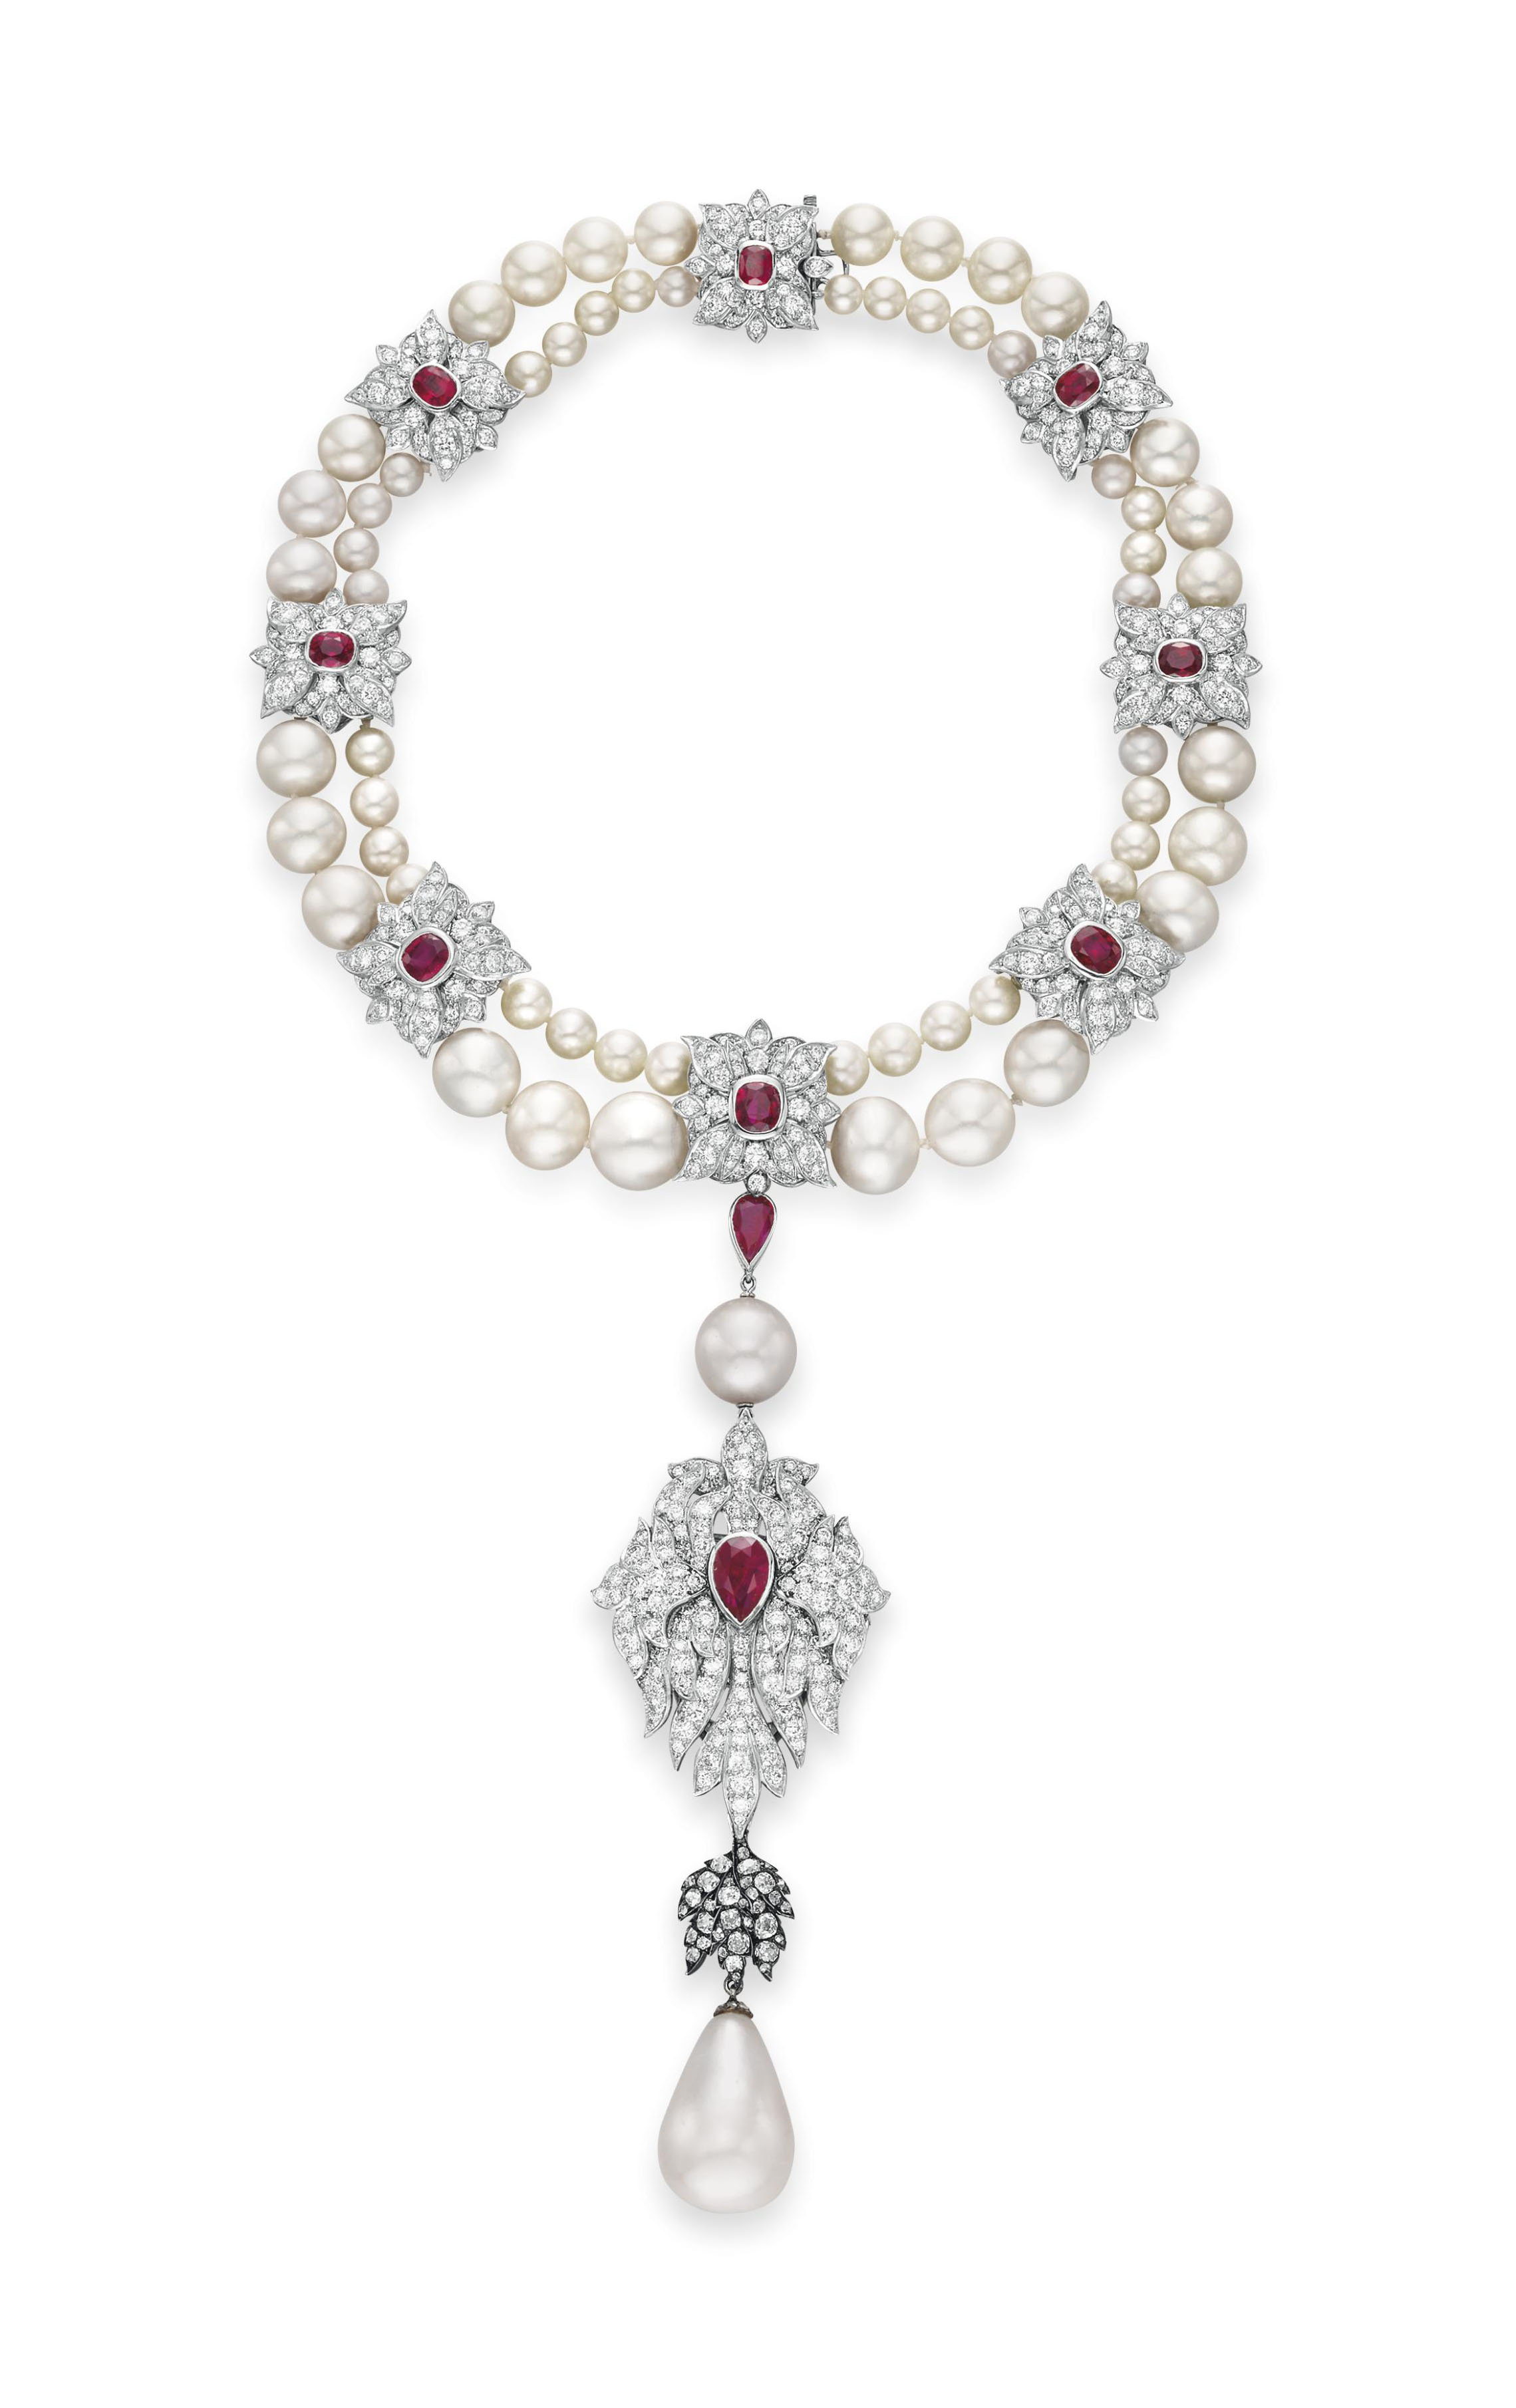 LA PEREGRINA  A NATURAL PEARL, DIAMOND, RUBY AND CULTURED PEARL NECKLACE, BY CARTIER